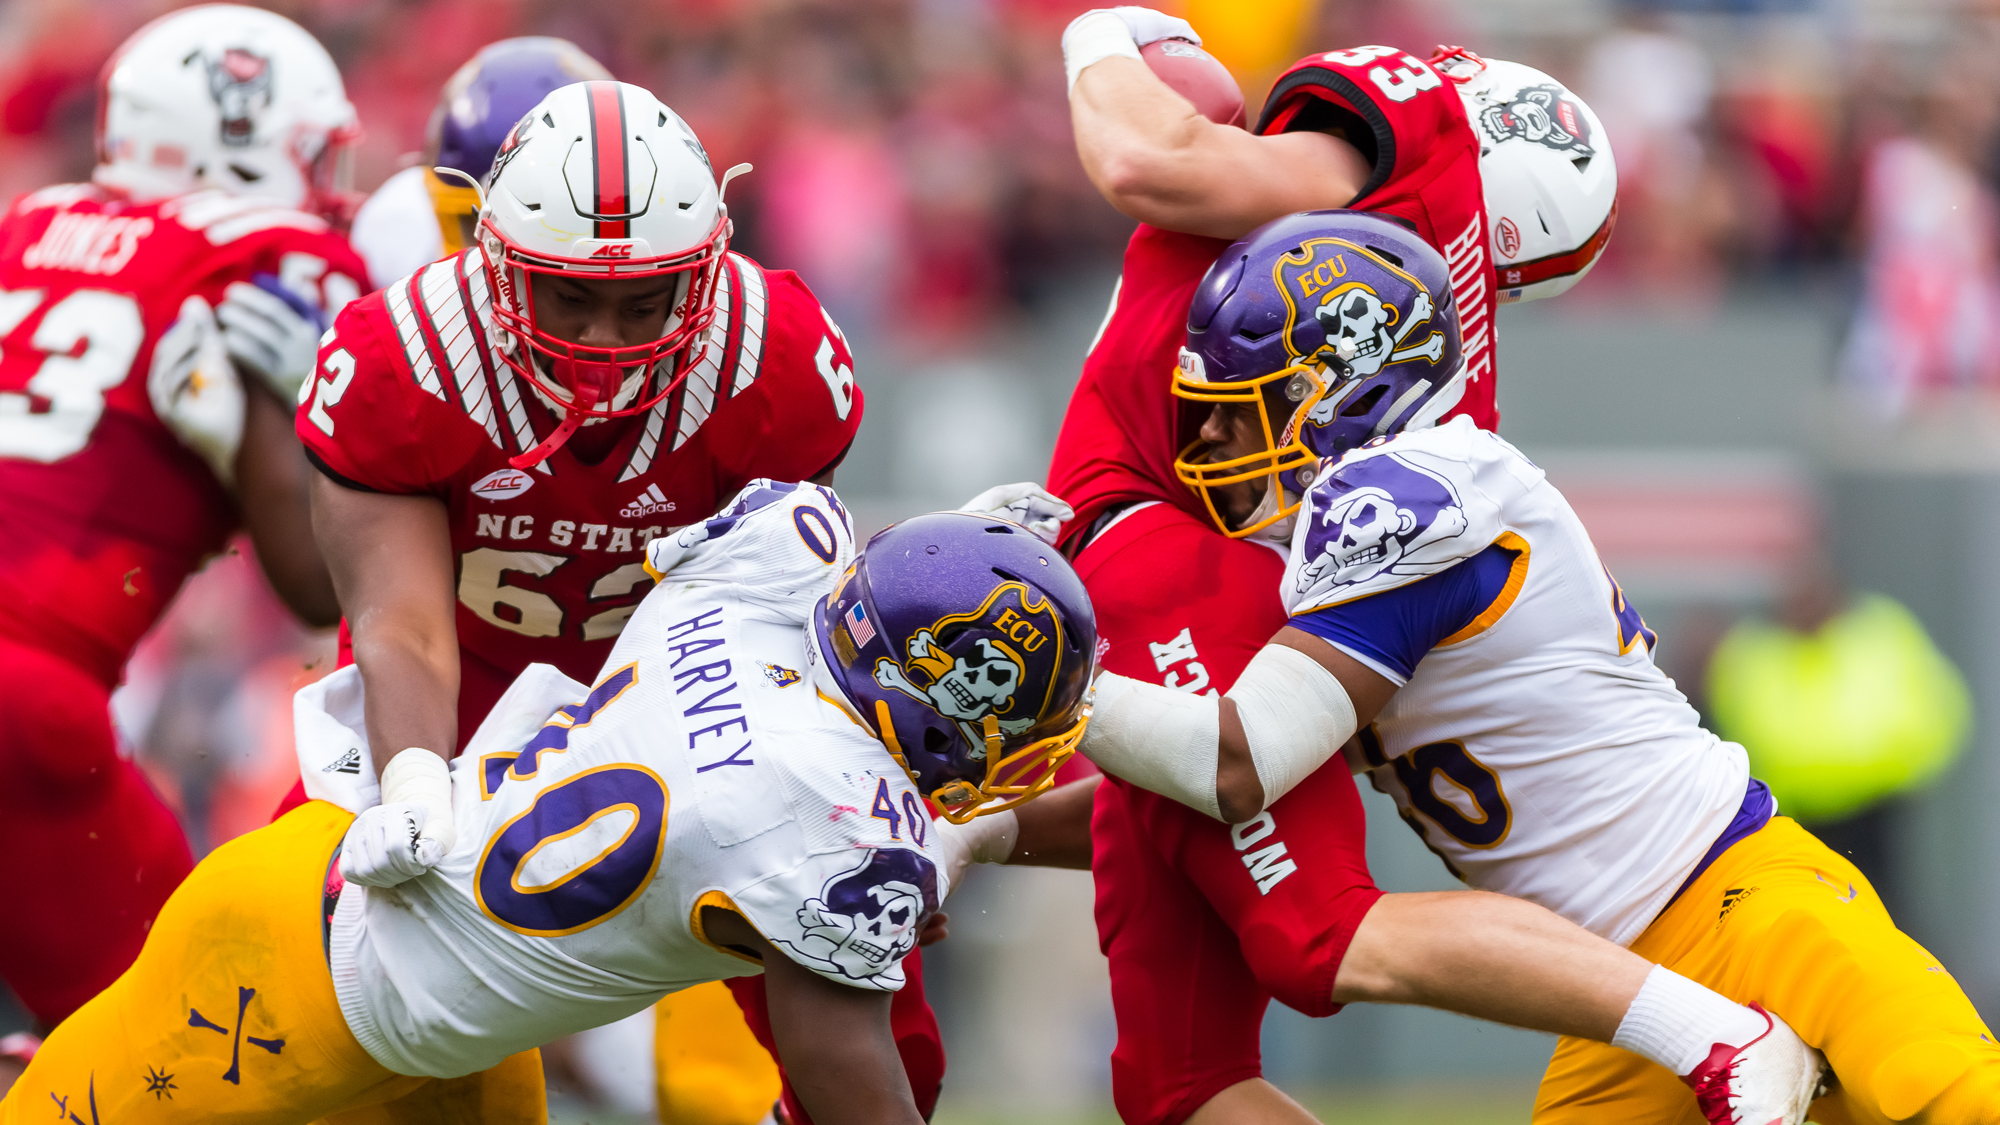 NC State ends long season for Pirates